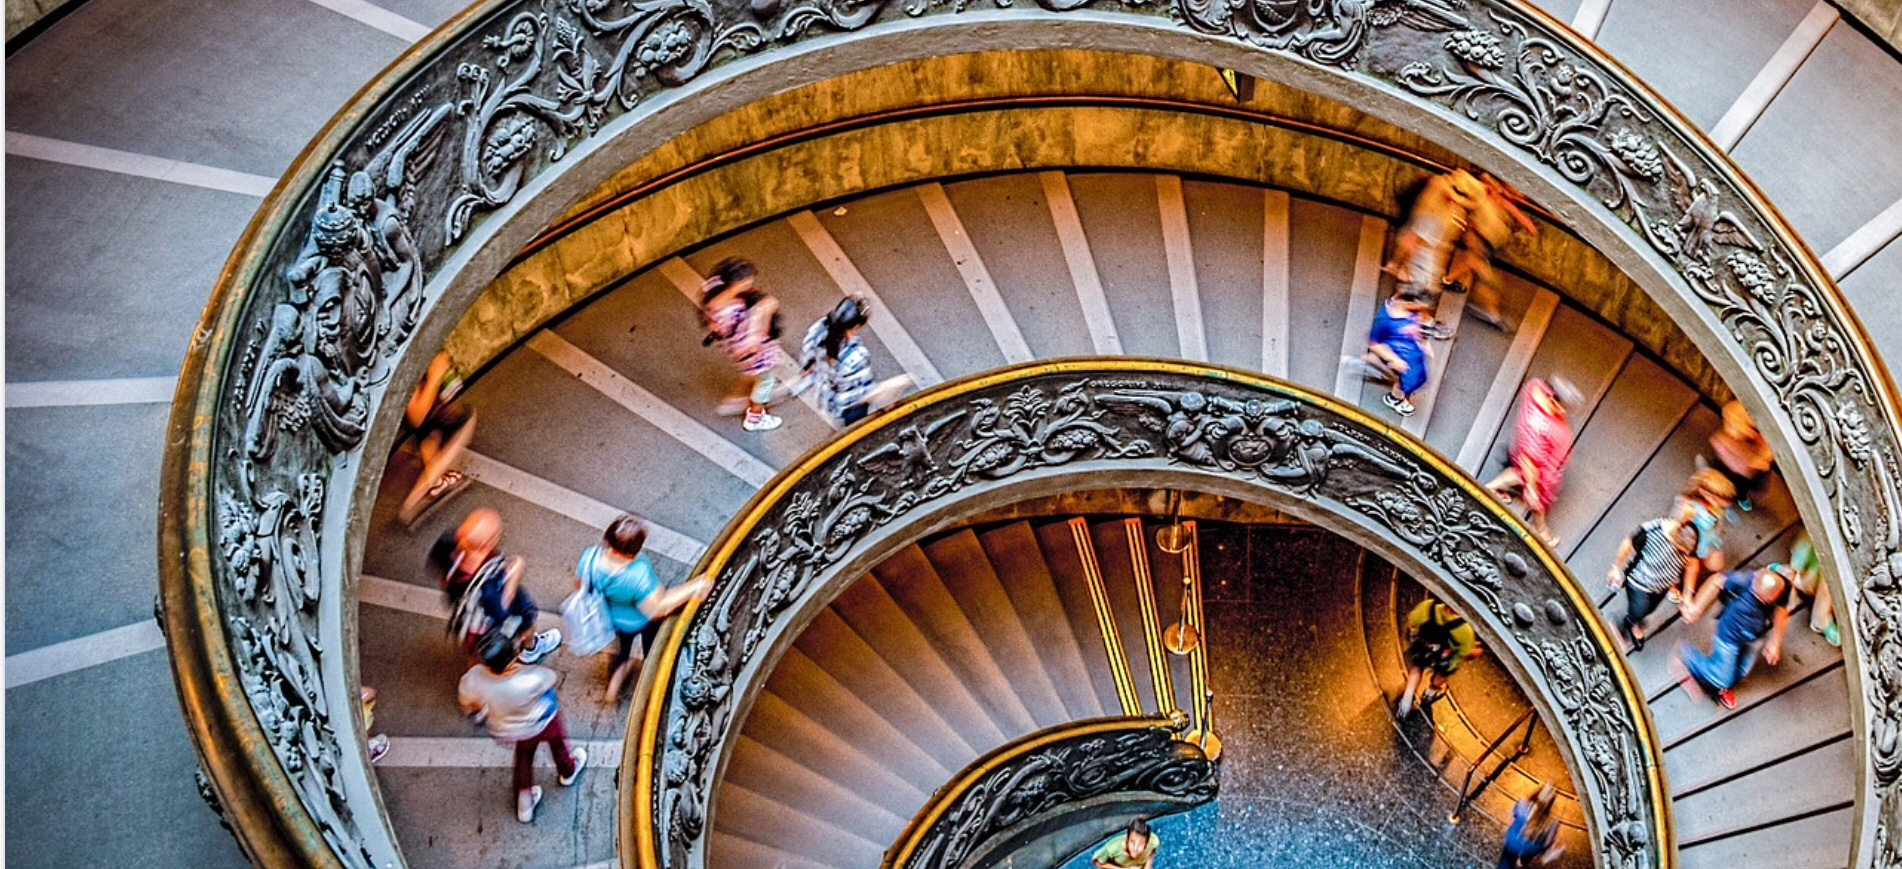 Vatican Museums reopen from June 1